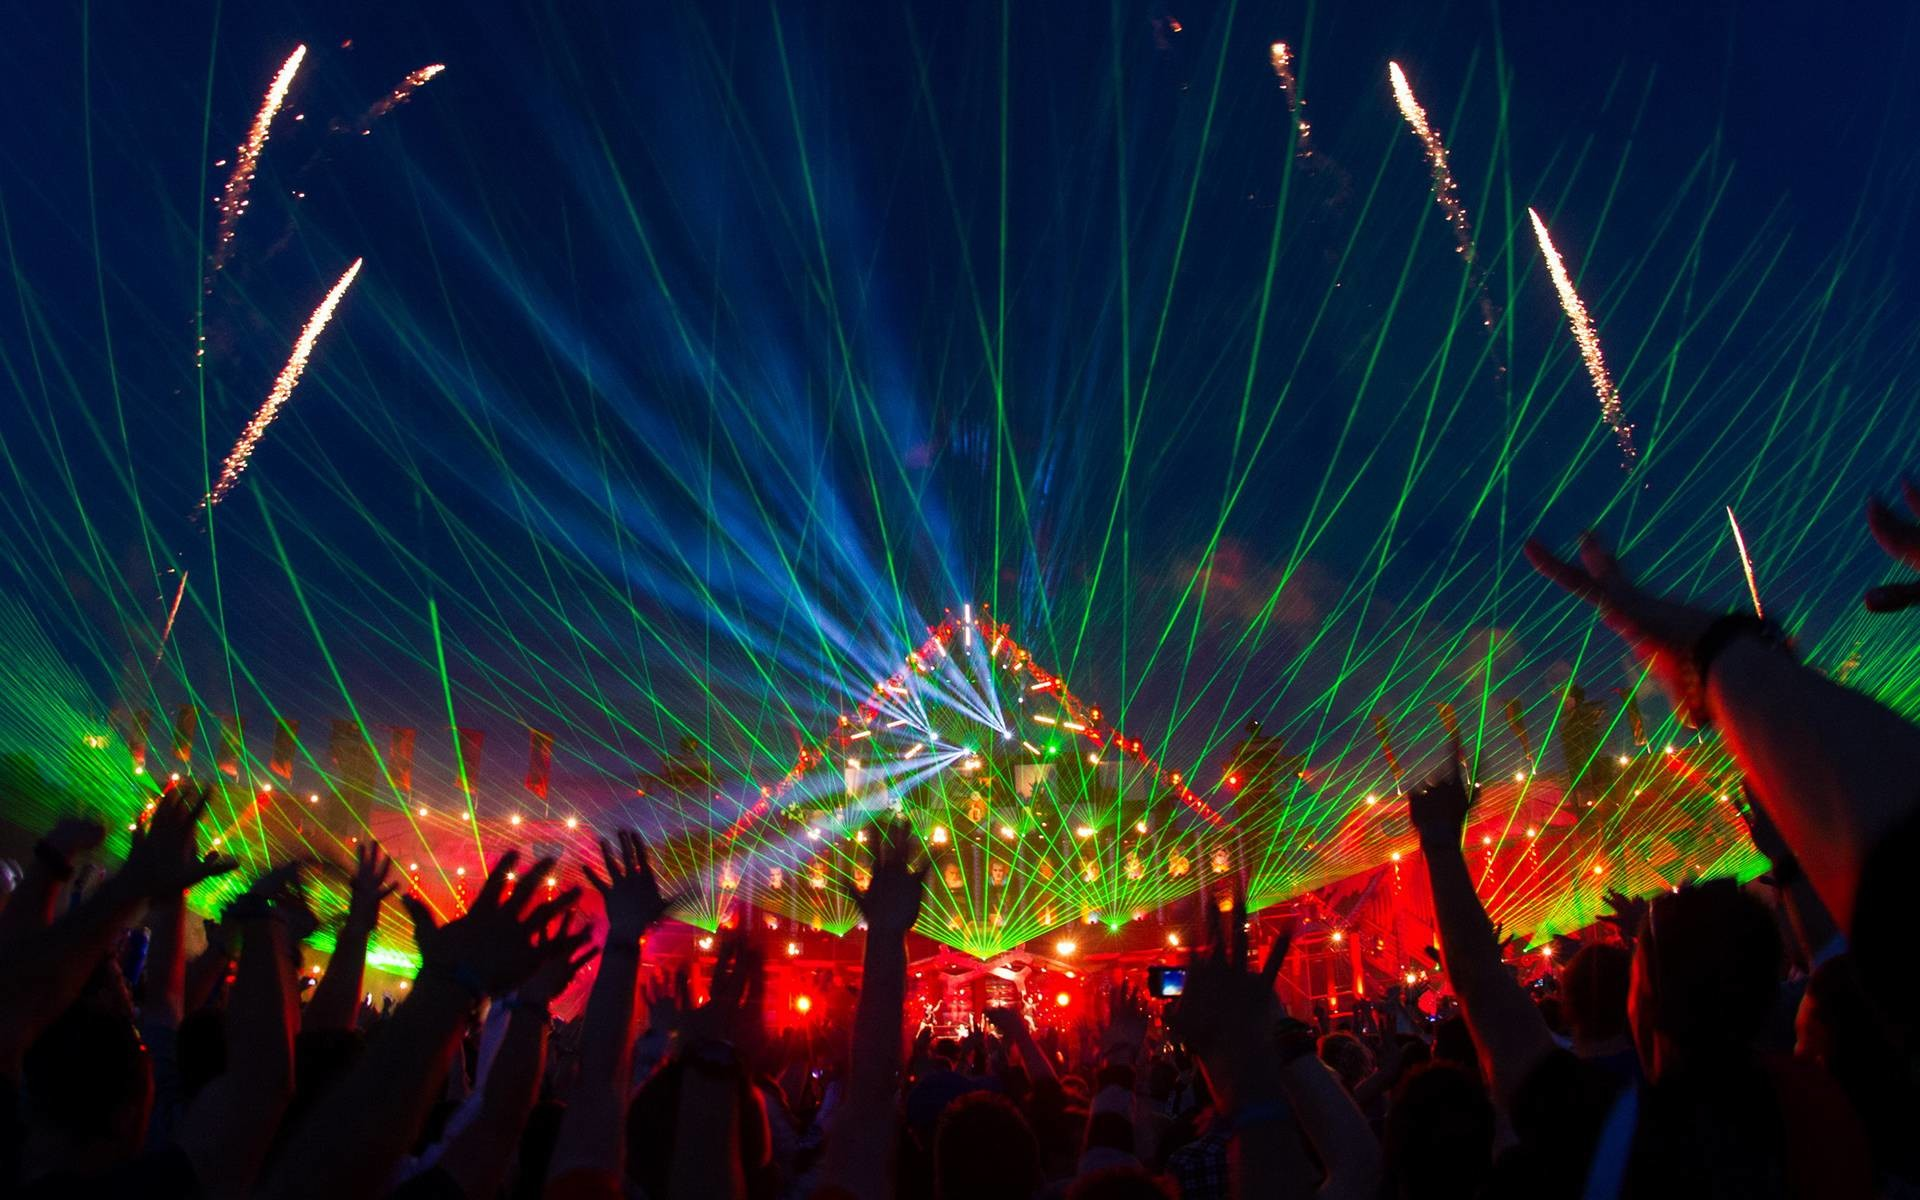 Download Ultra Music Festival Wallpaper Hd Gallery: Tomorrowland 2018 Laser Show HD Wallpaper (72+ Images